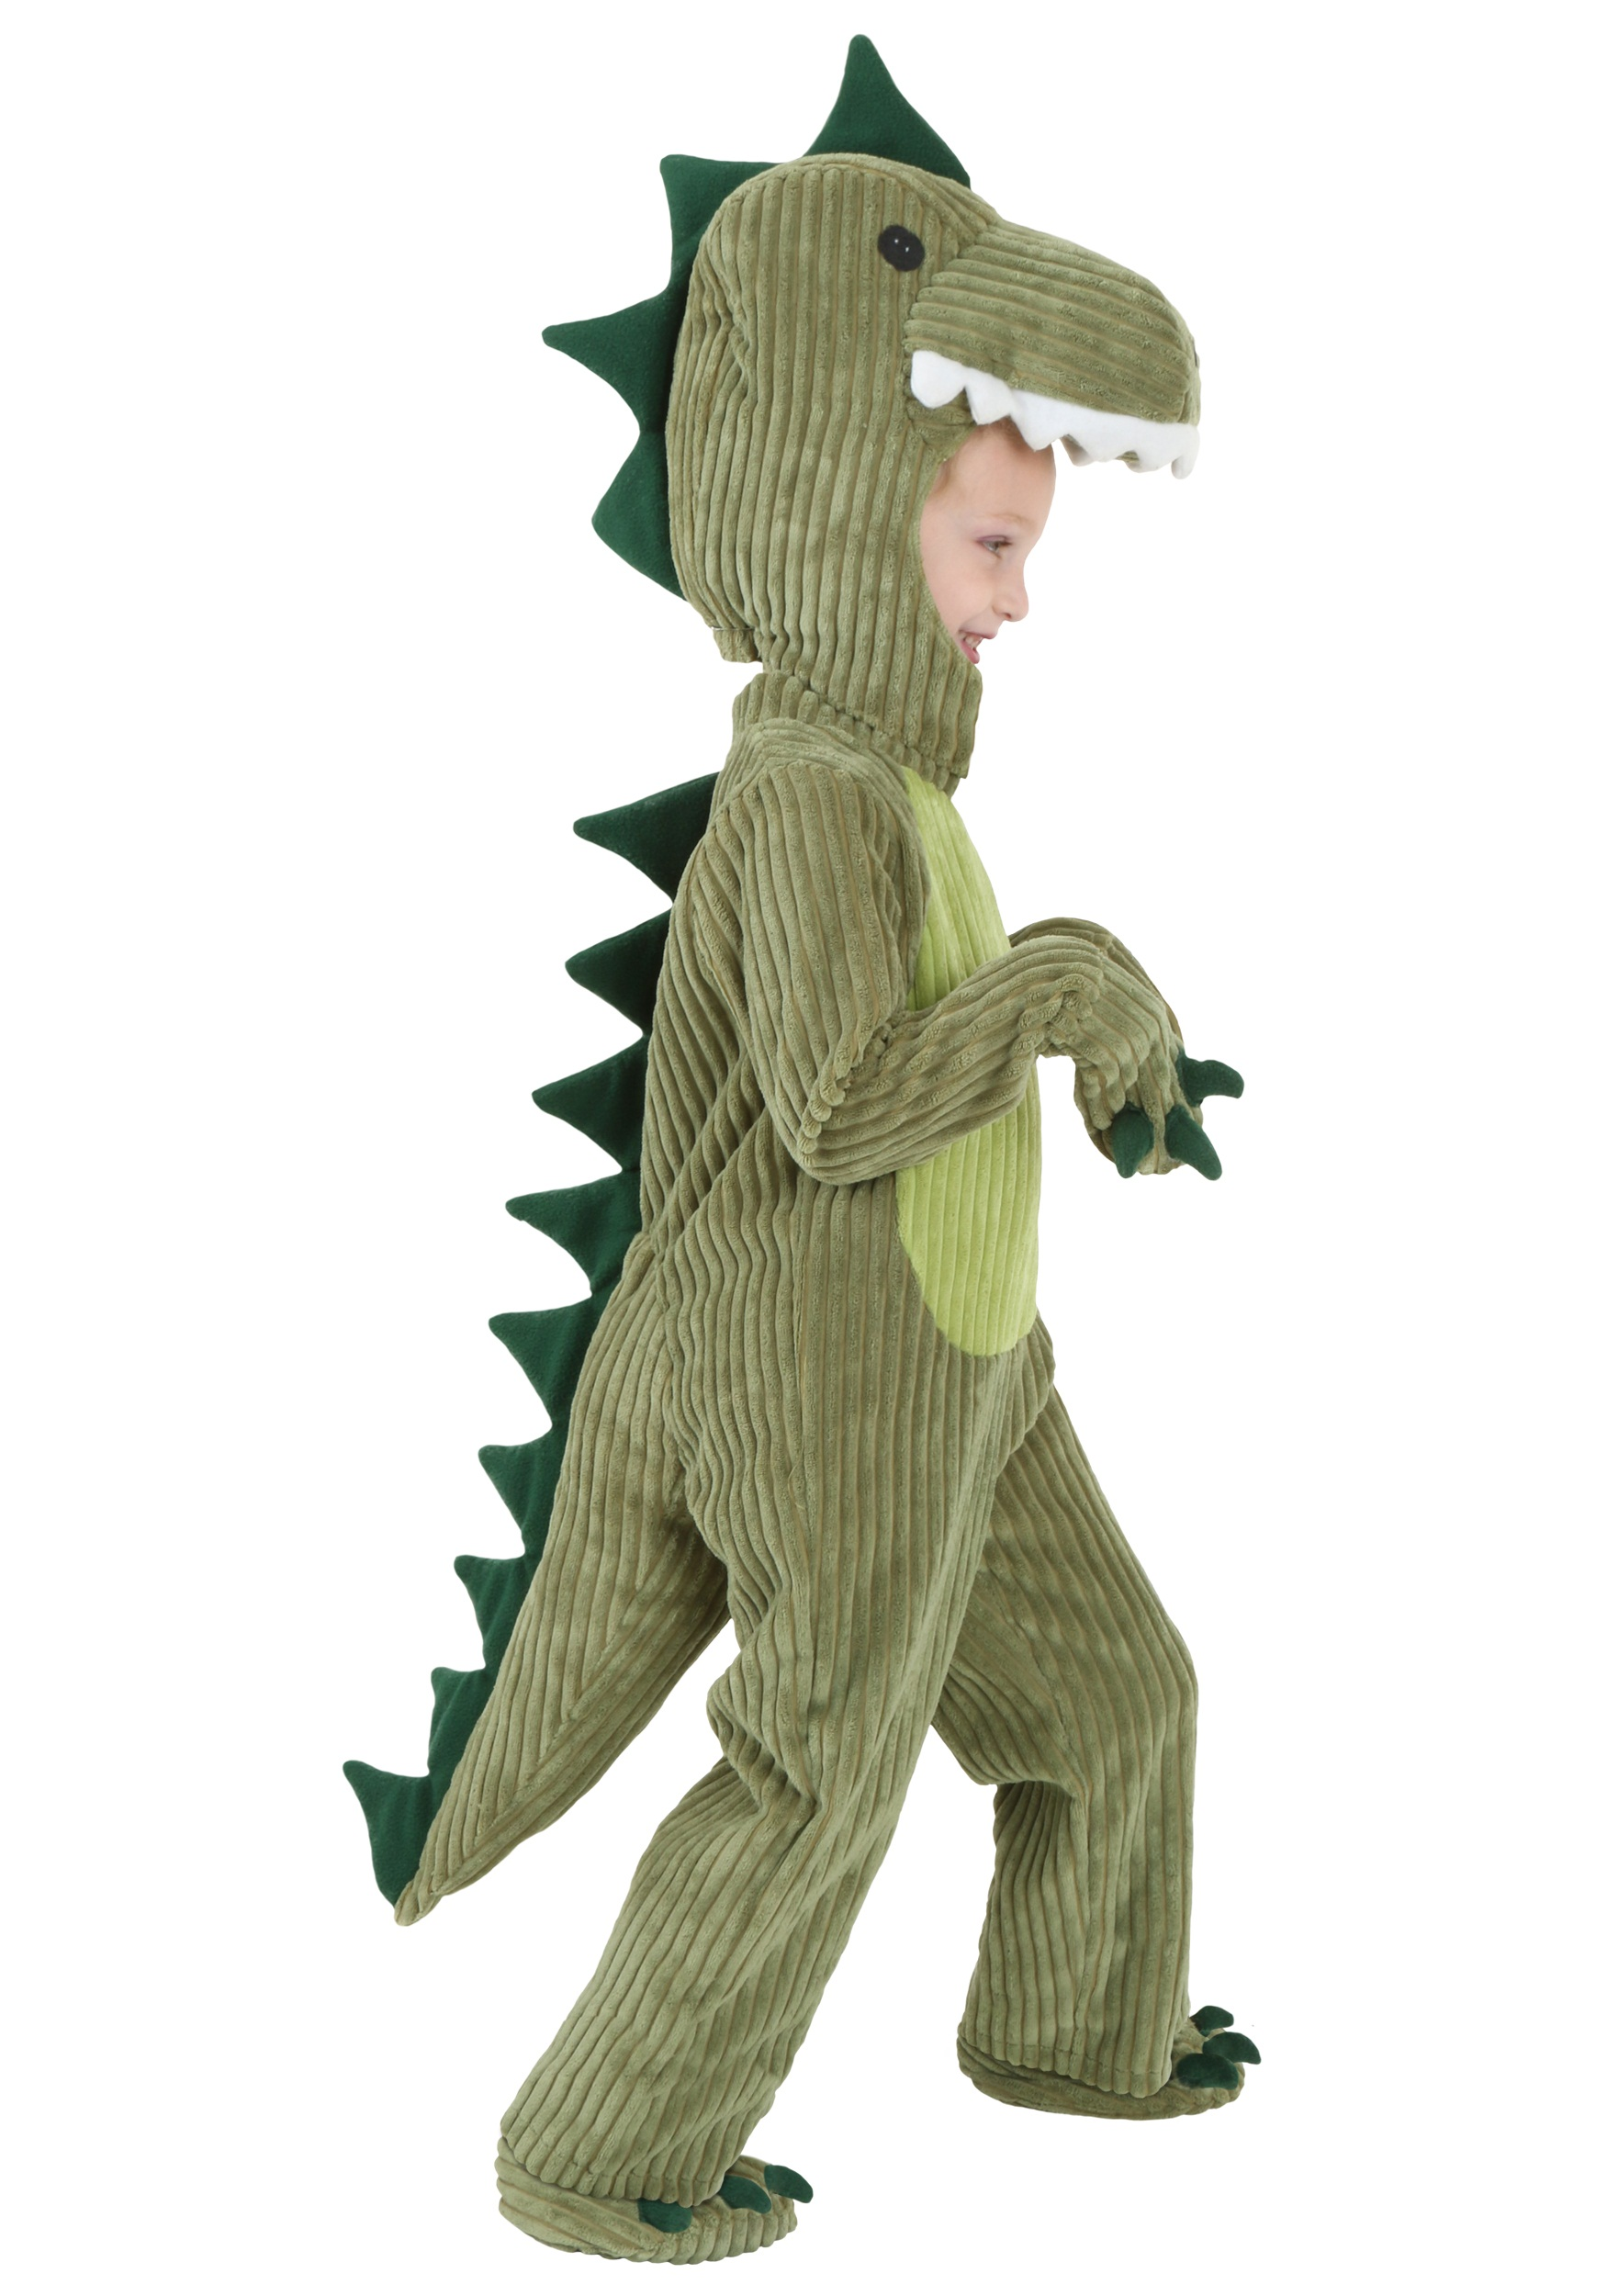 Dinosaur costumes kids toddler dinosaur halloween costume toddler t rex costume solutioingenieria Image collections